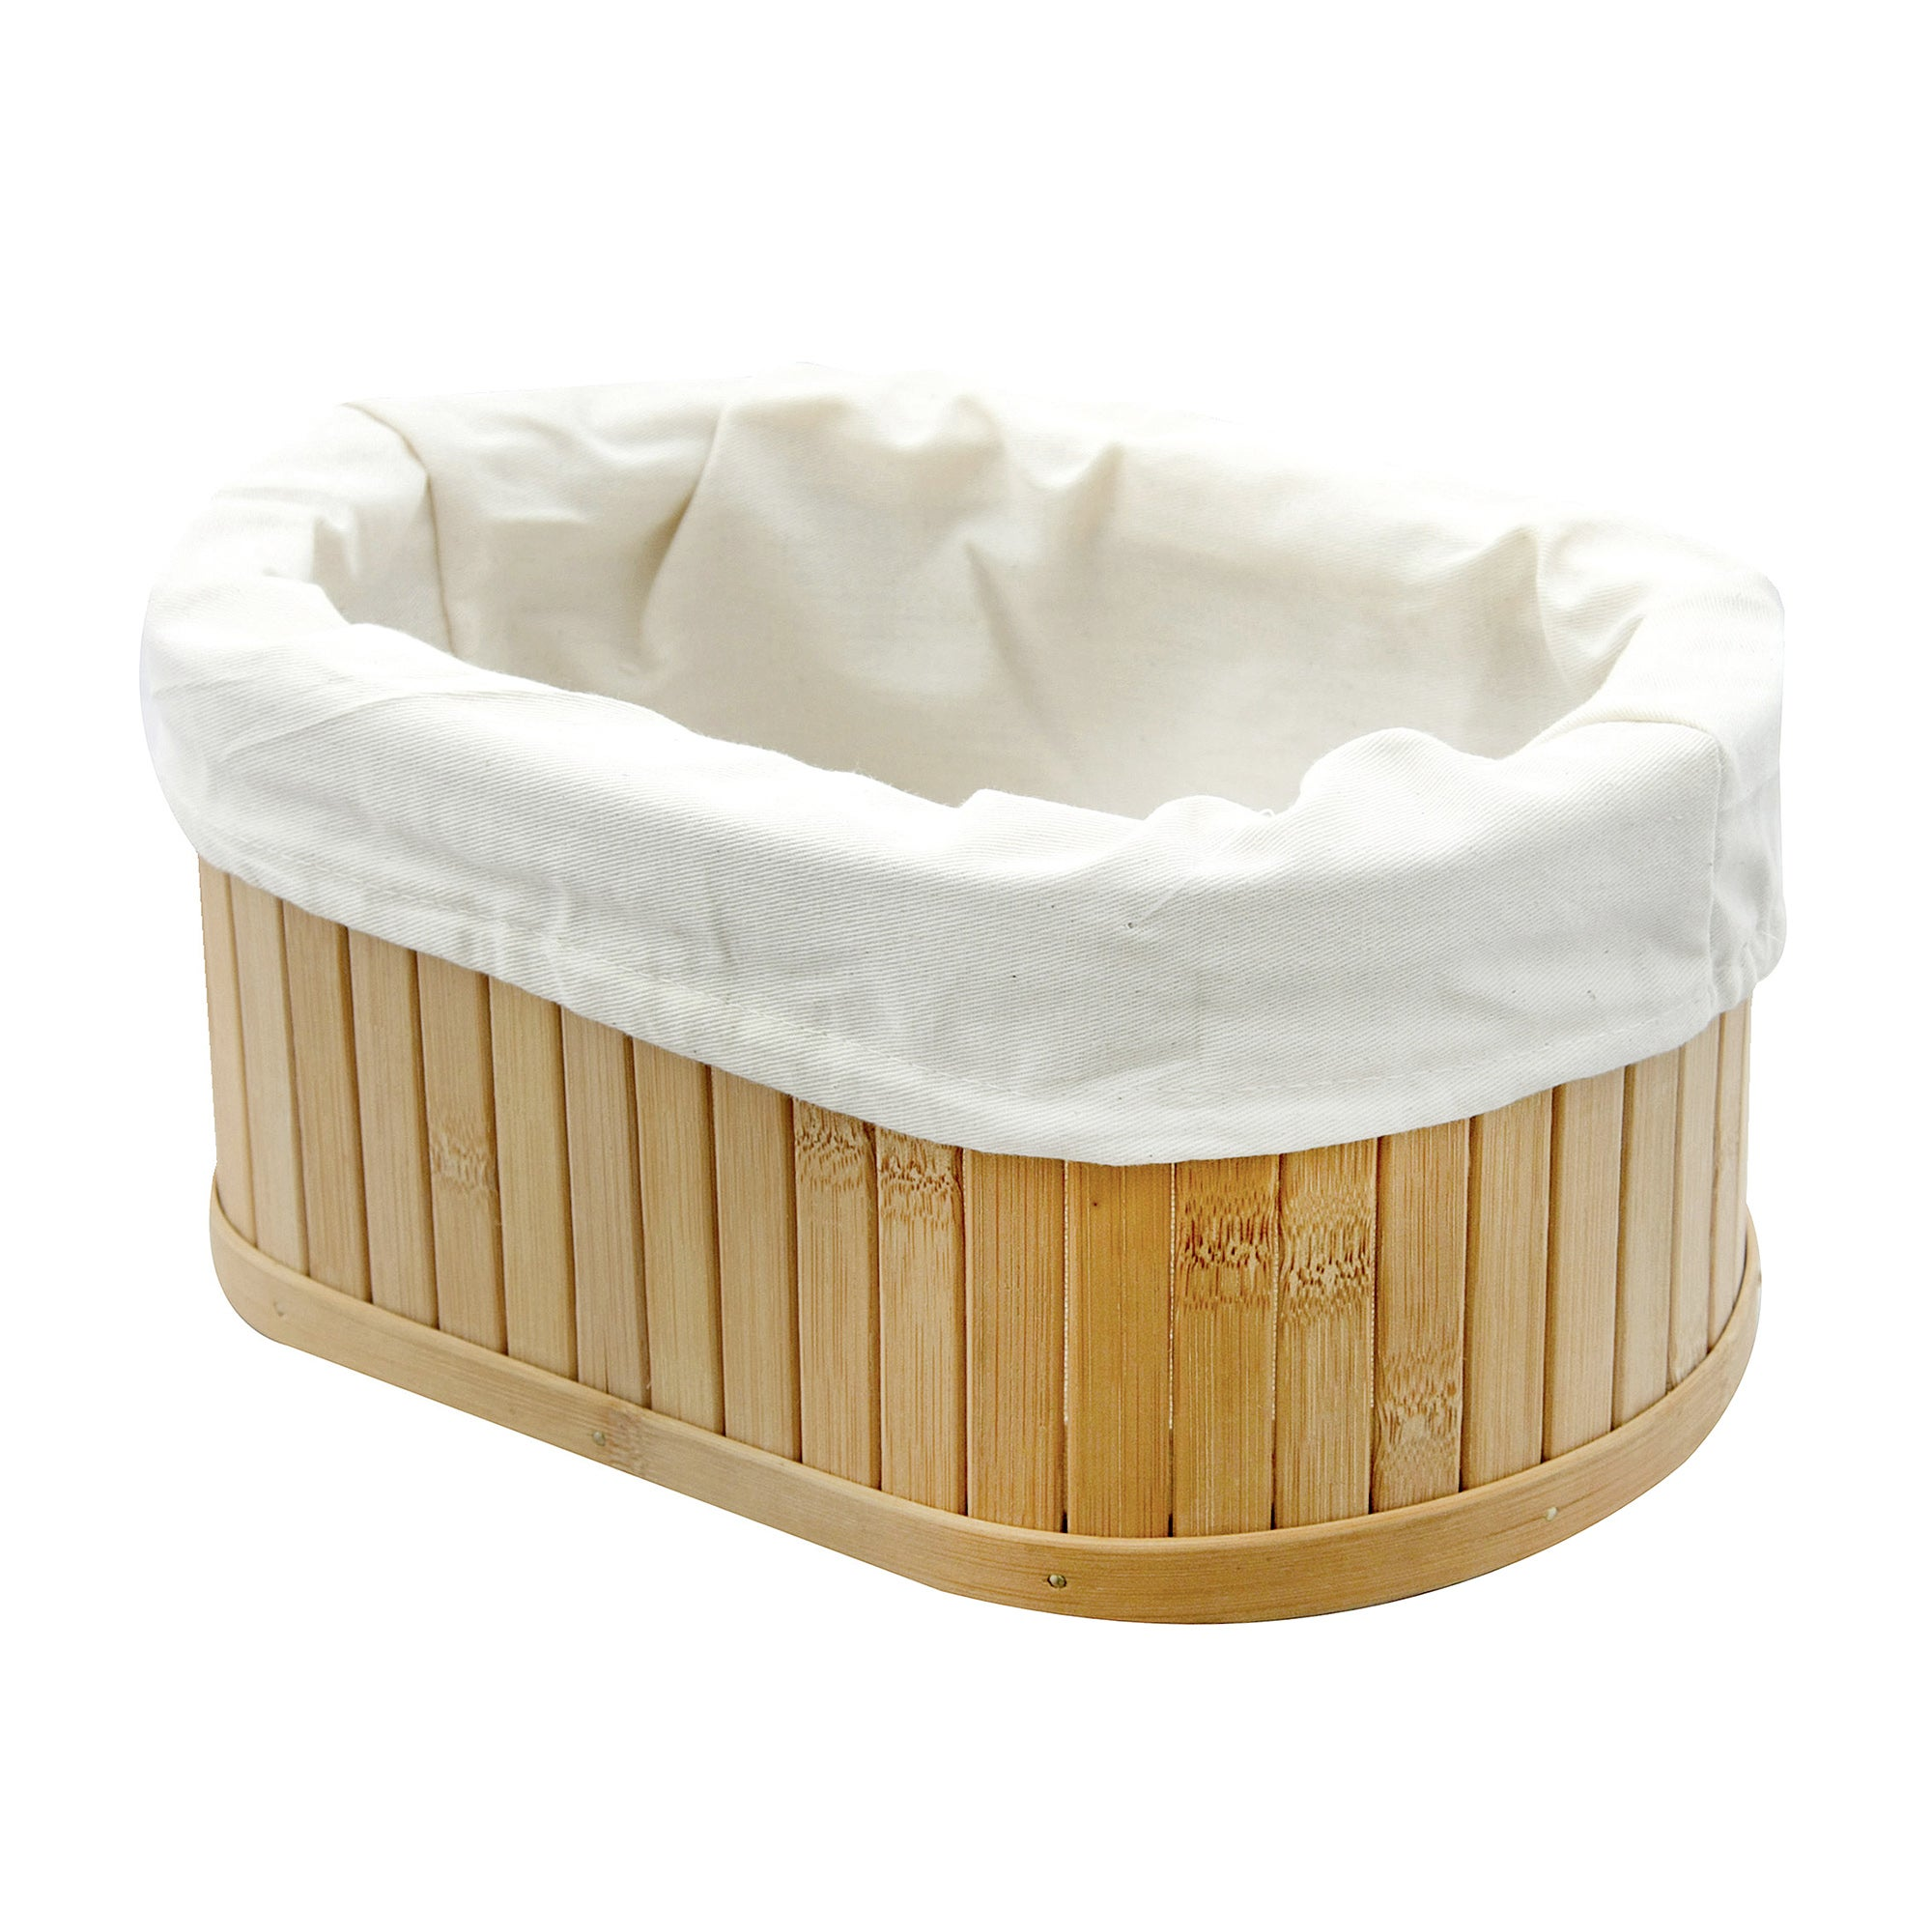 Woodford Oval Bamboo Storage Basket